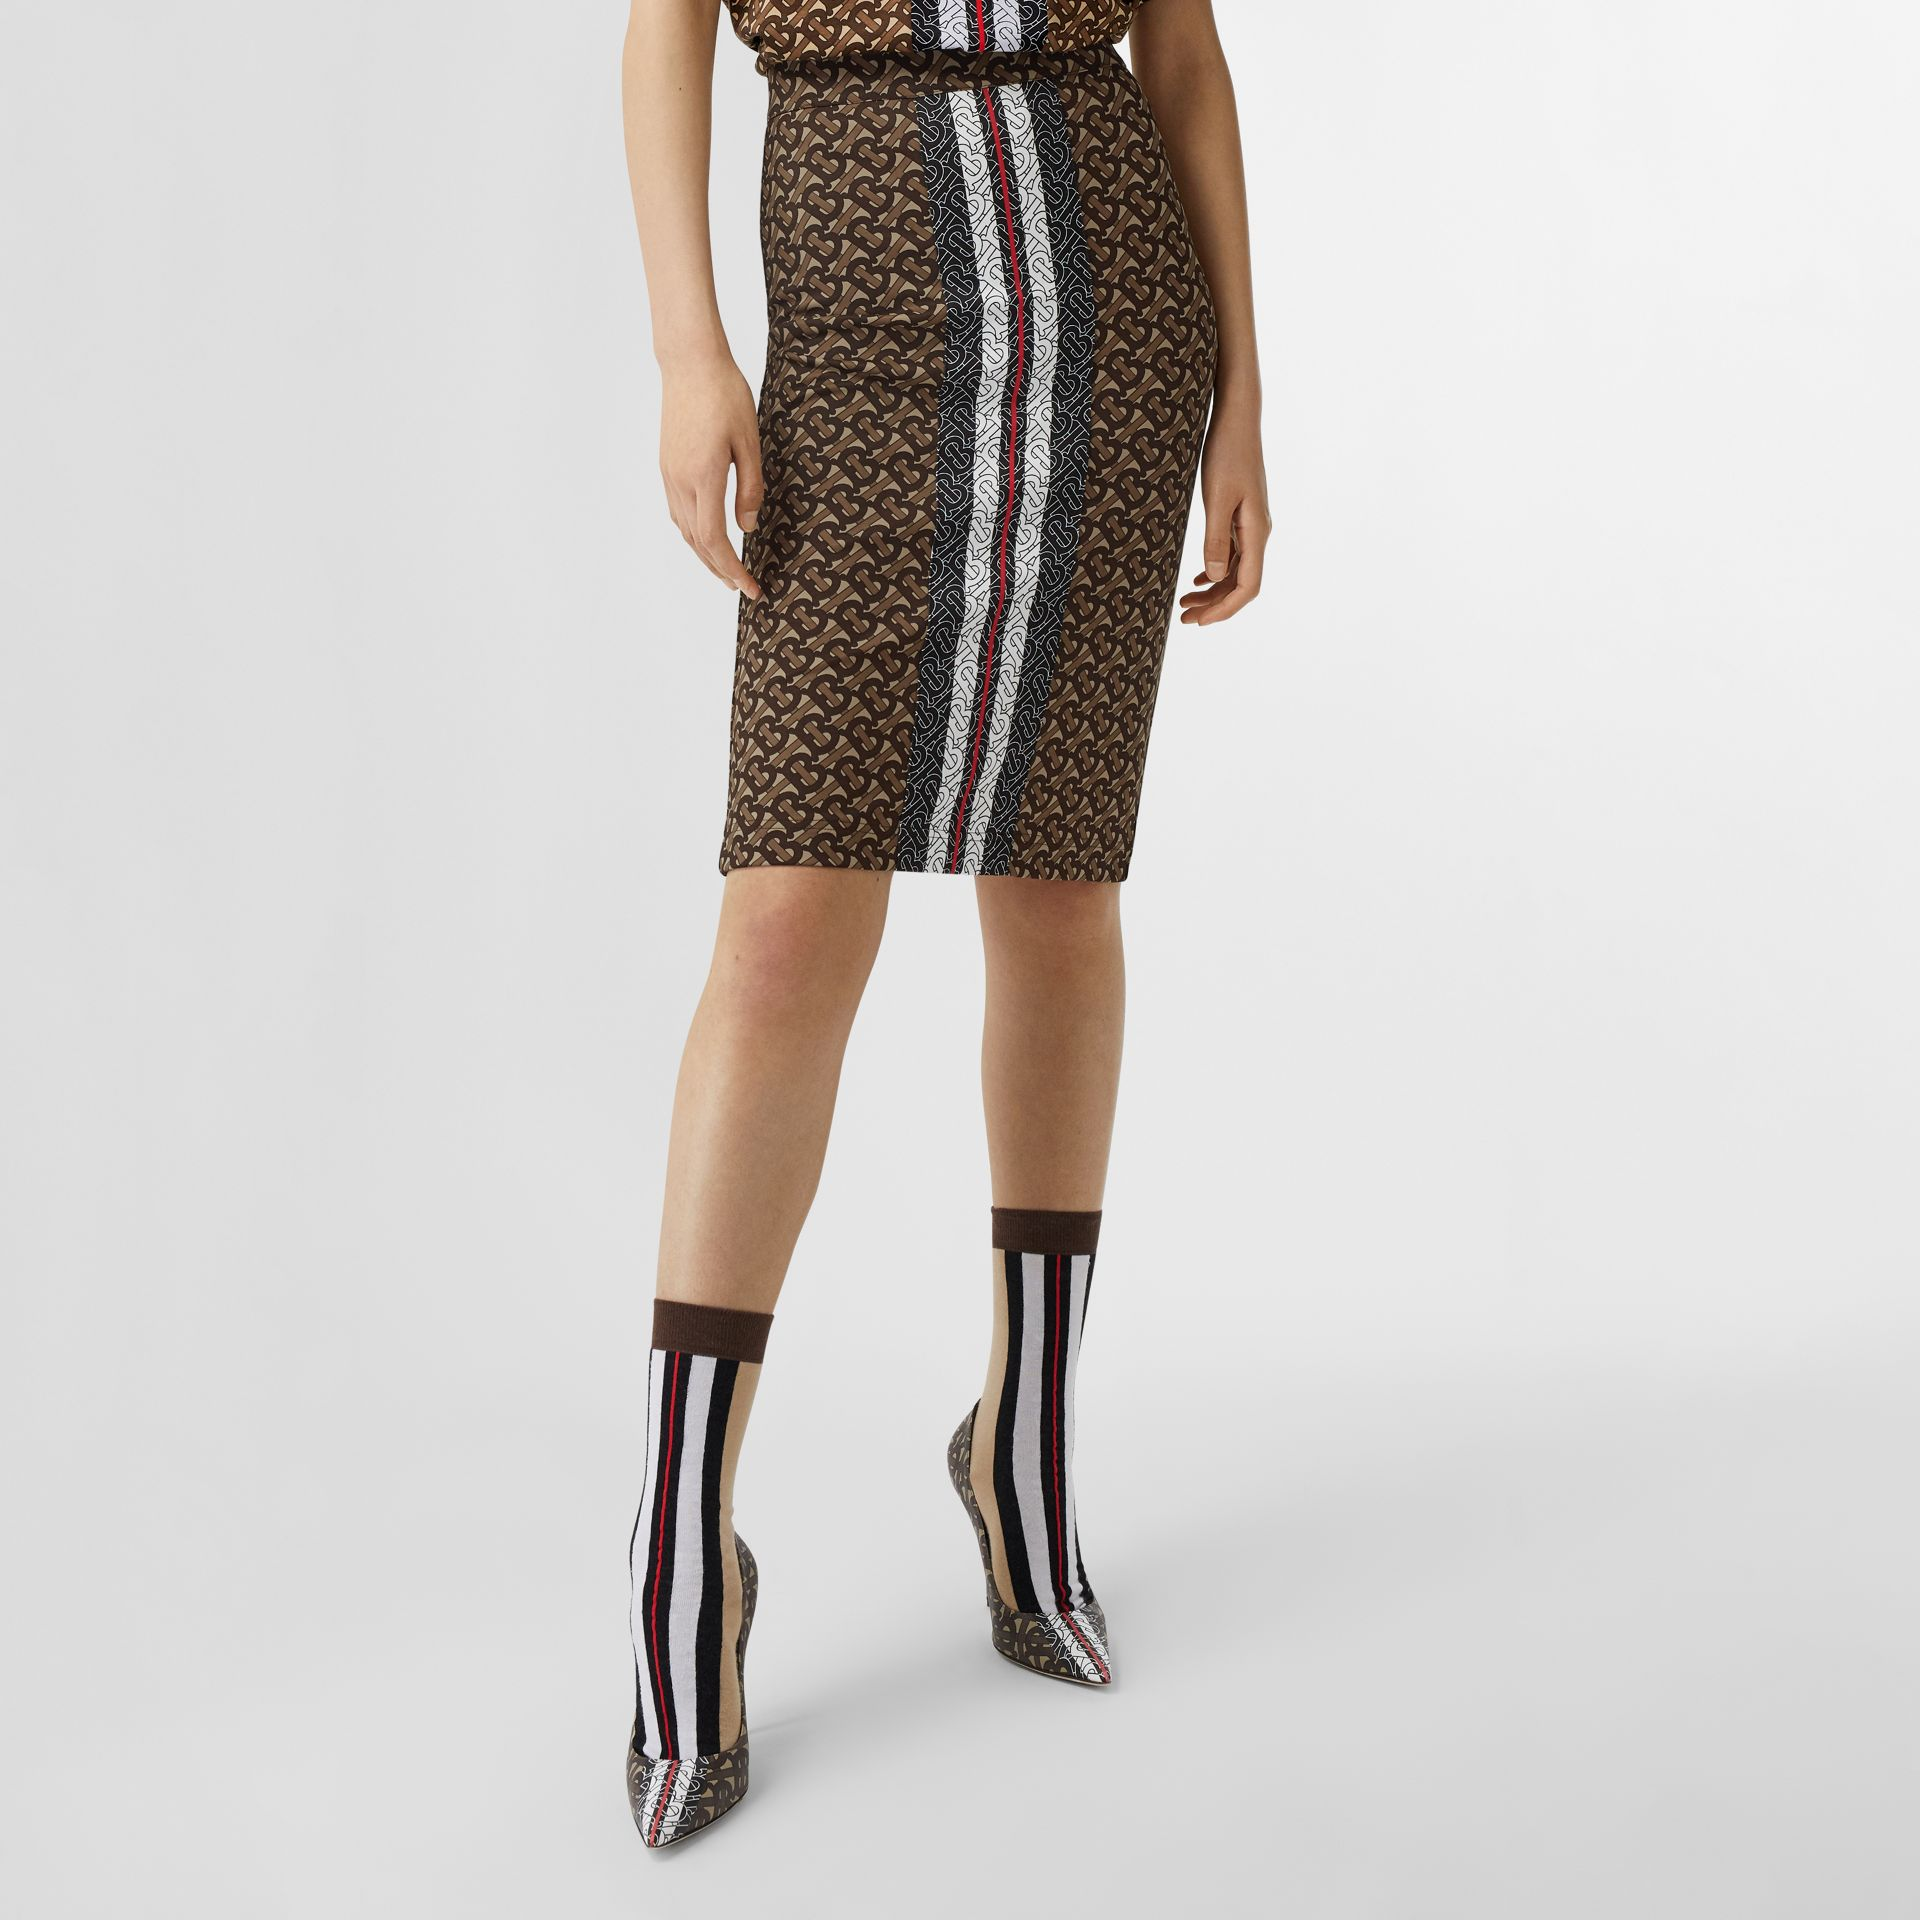 Monogram Stripe Print Stretch Jersey Pencil Skirt in Bridle Brown - Women | Burberry United Kingdom - gallery image 4